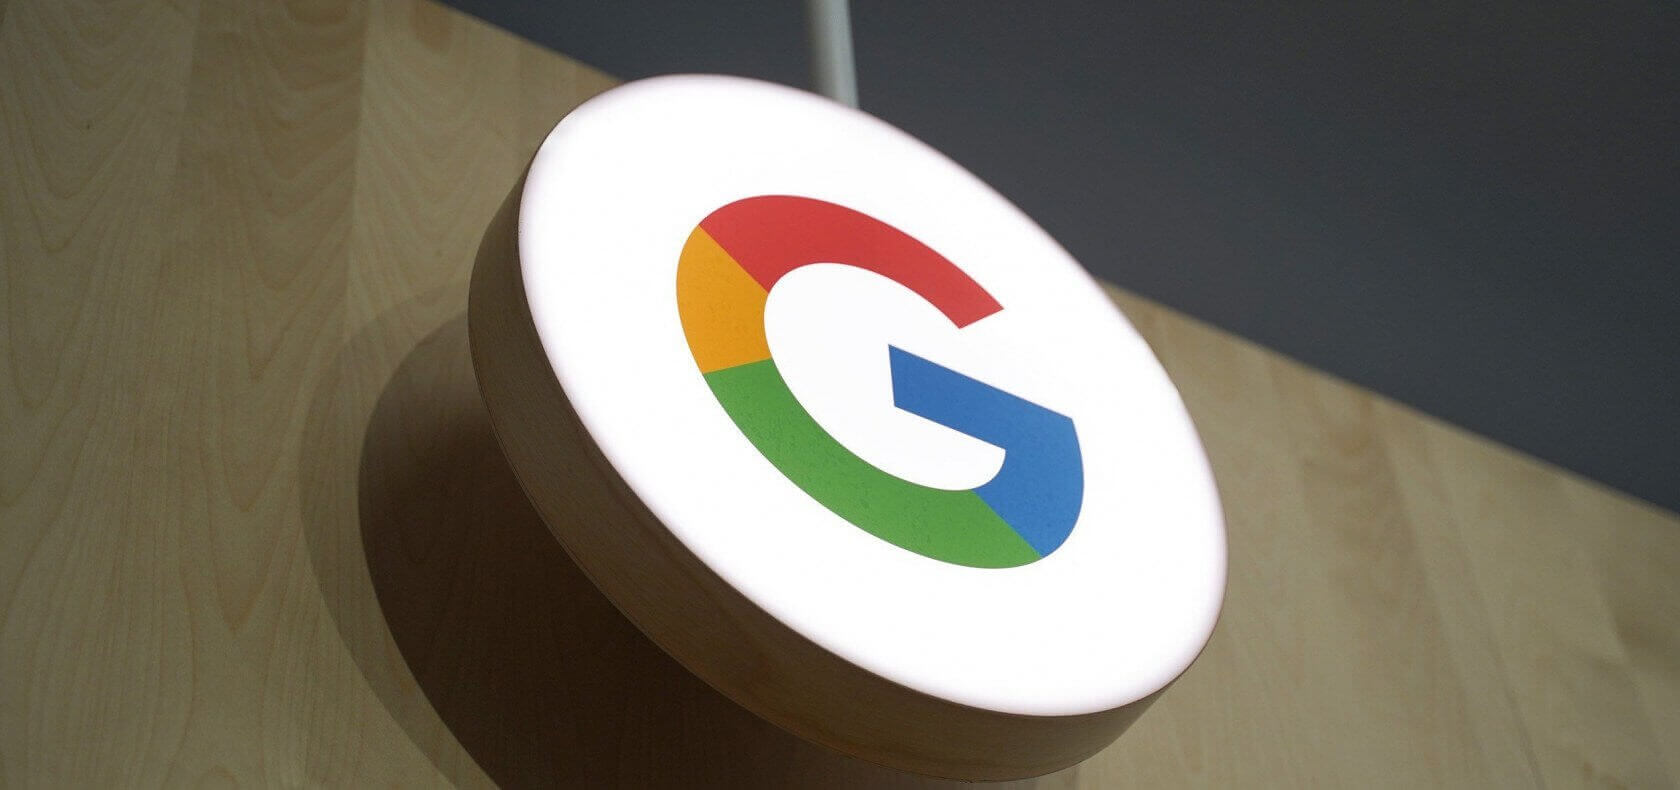 Google asks its North American employees to work from home due to coronavirus concerns